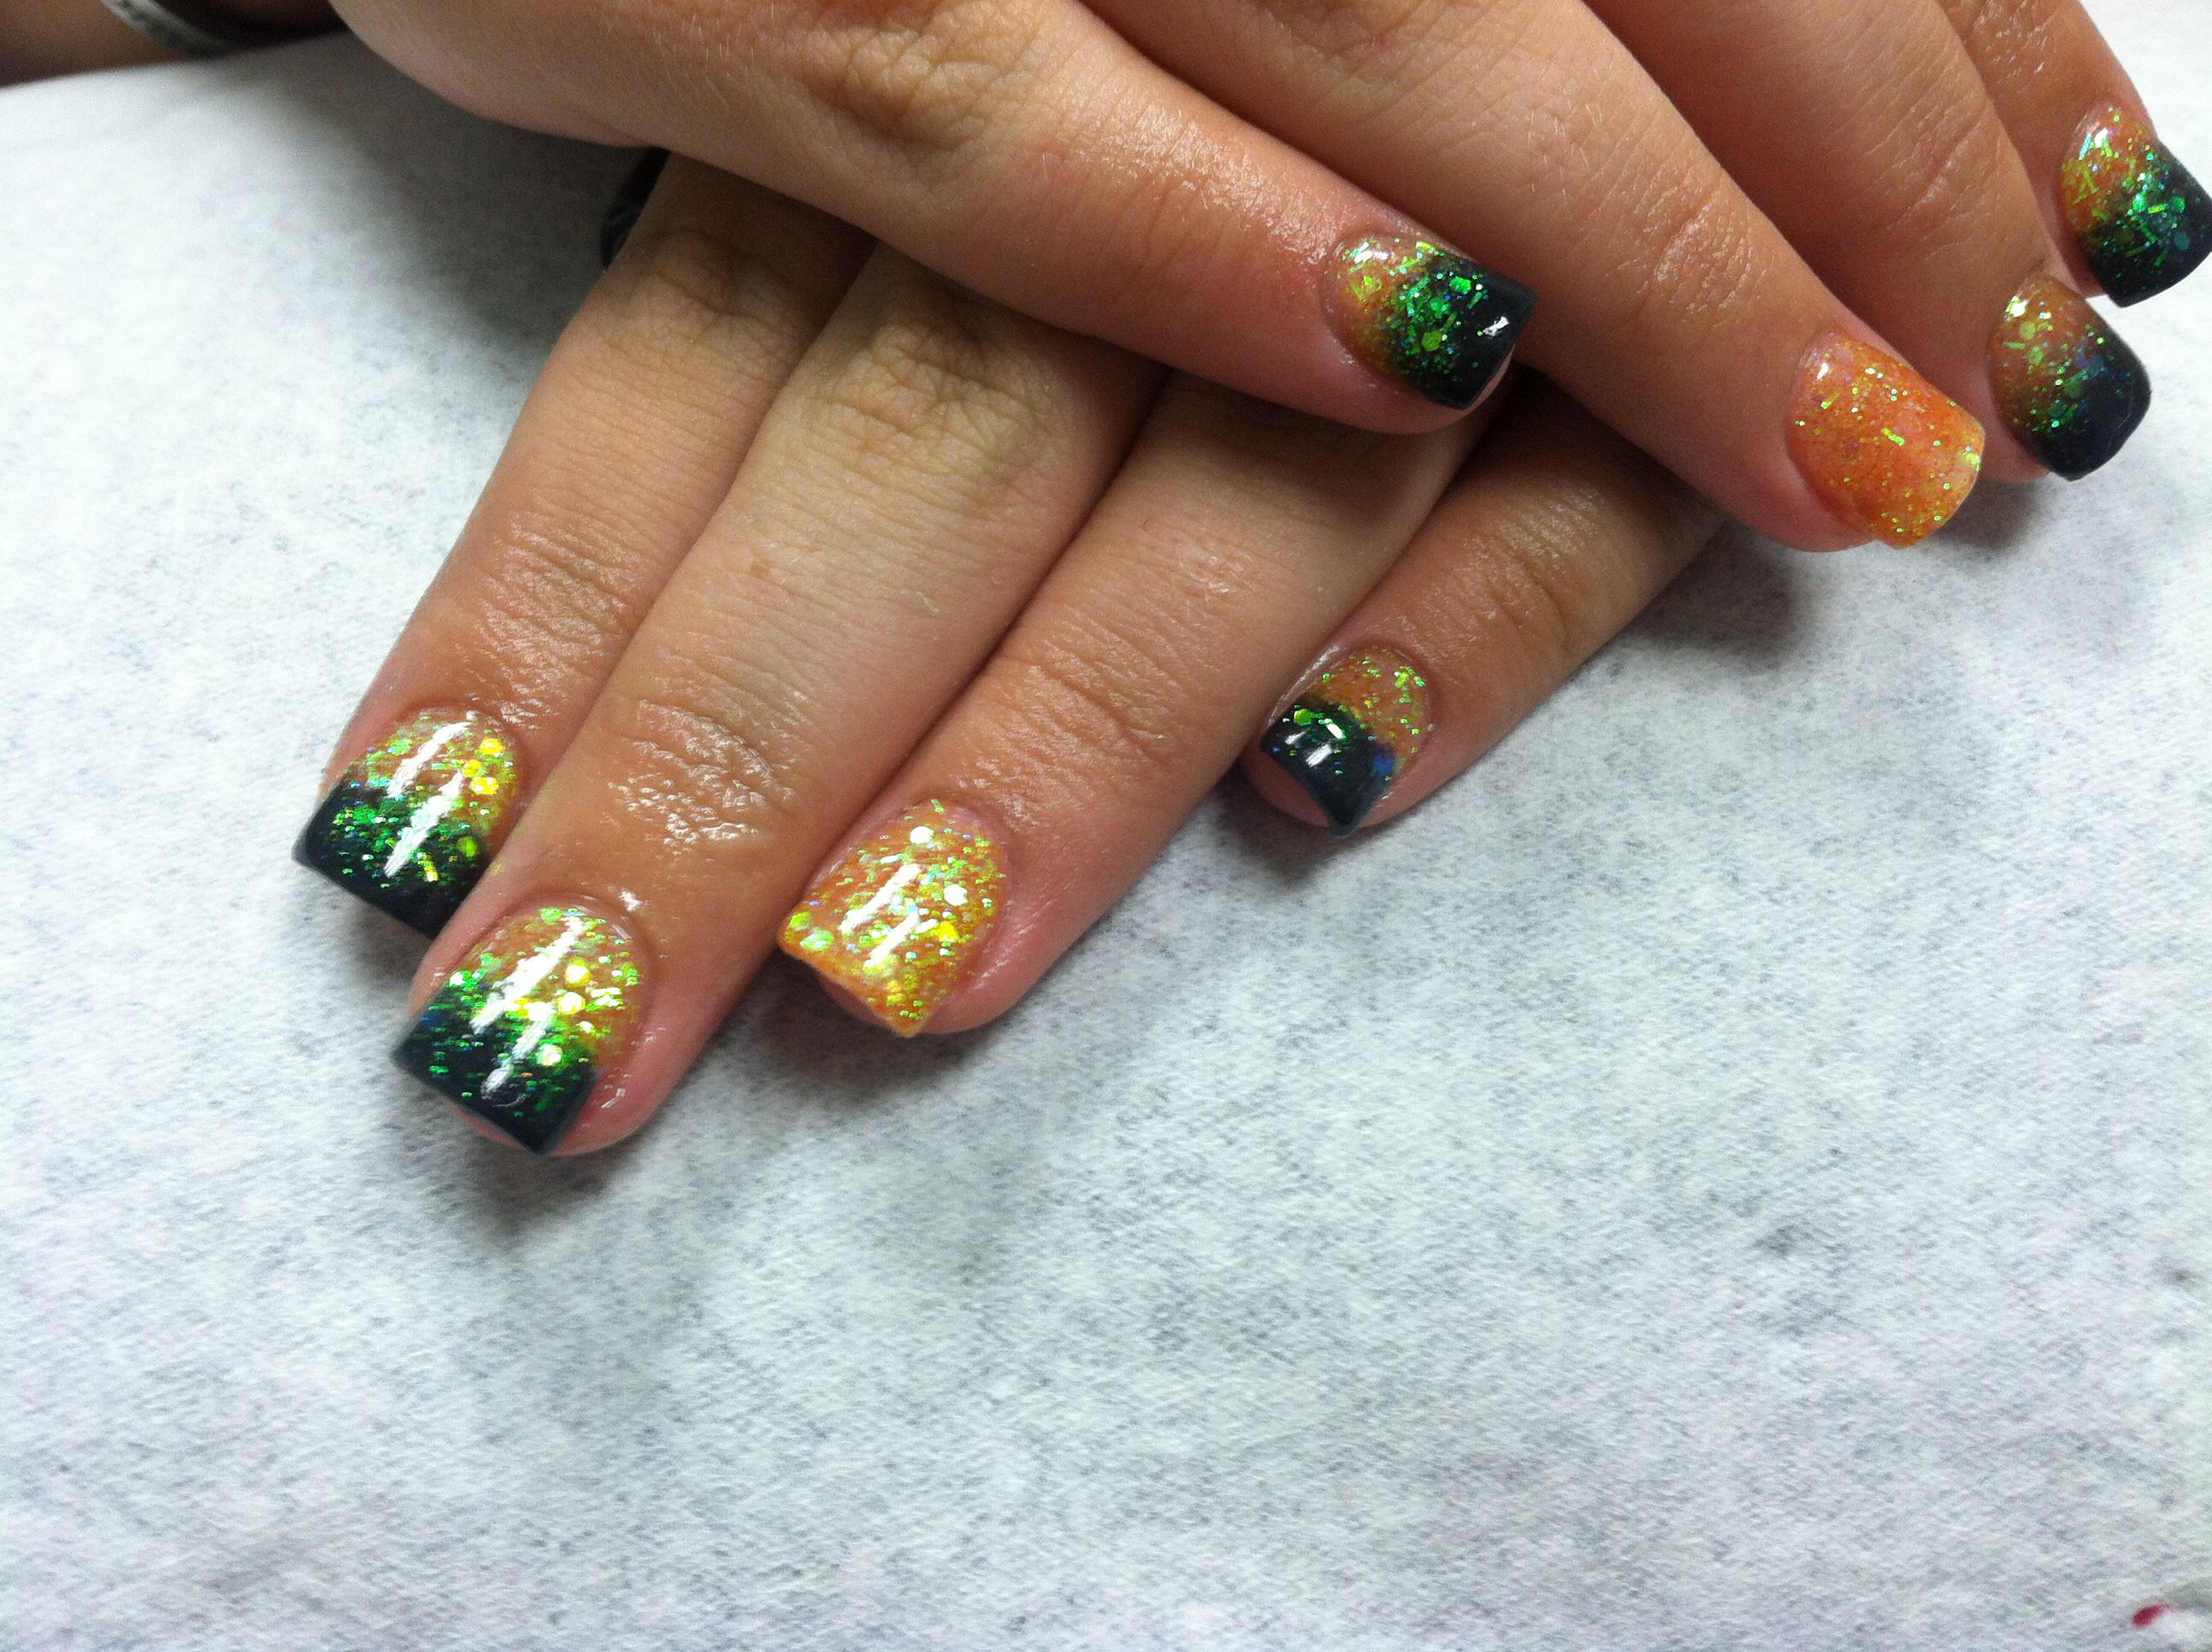 Black orange green halloween fade acrylic nails | My ...